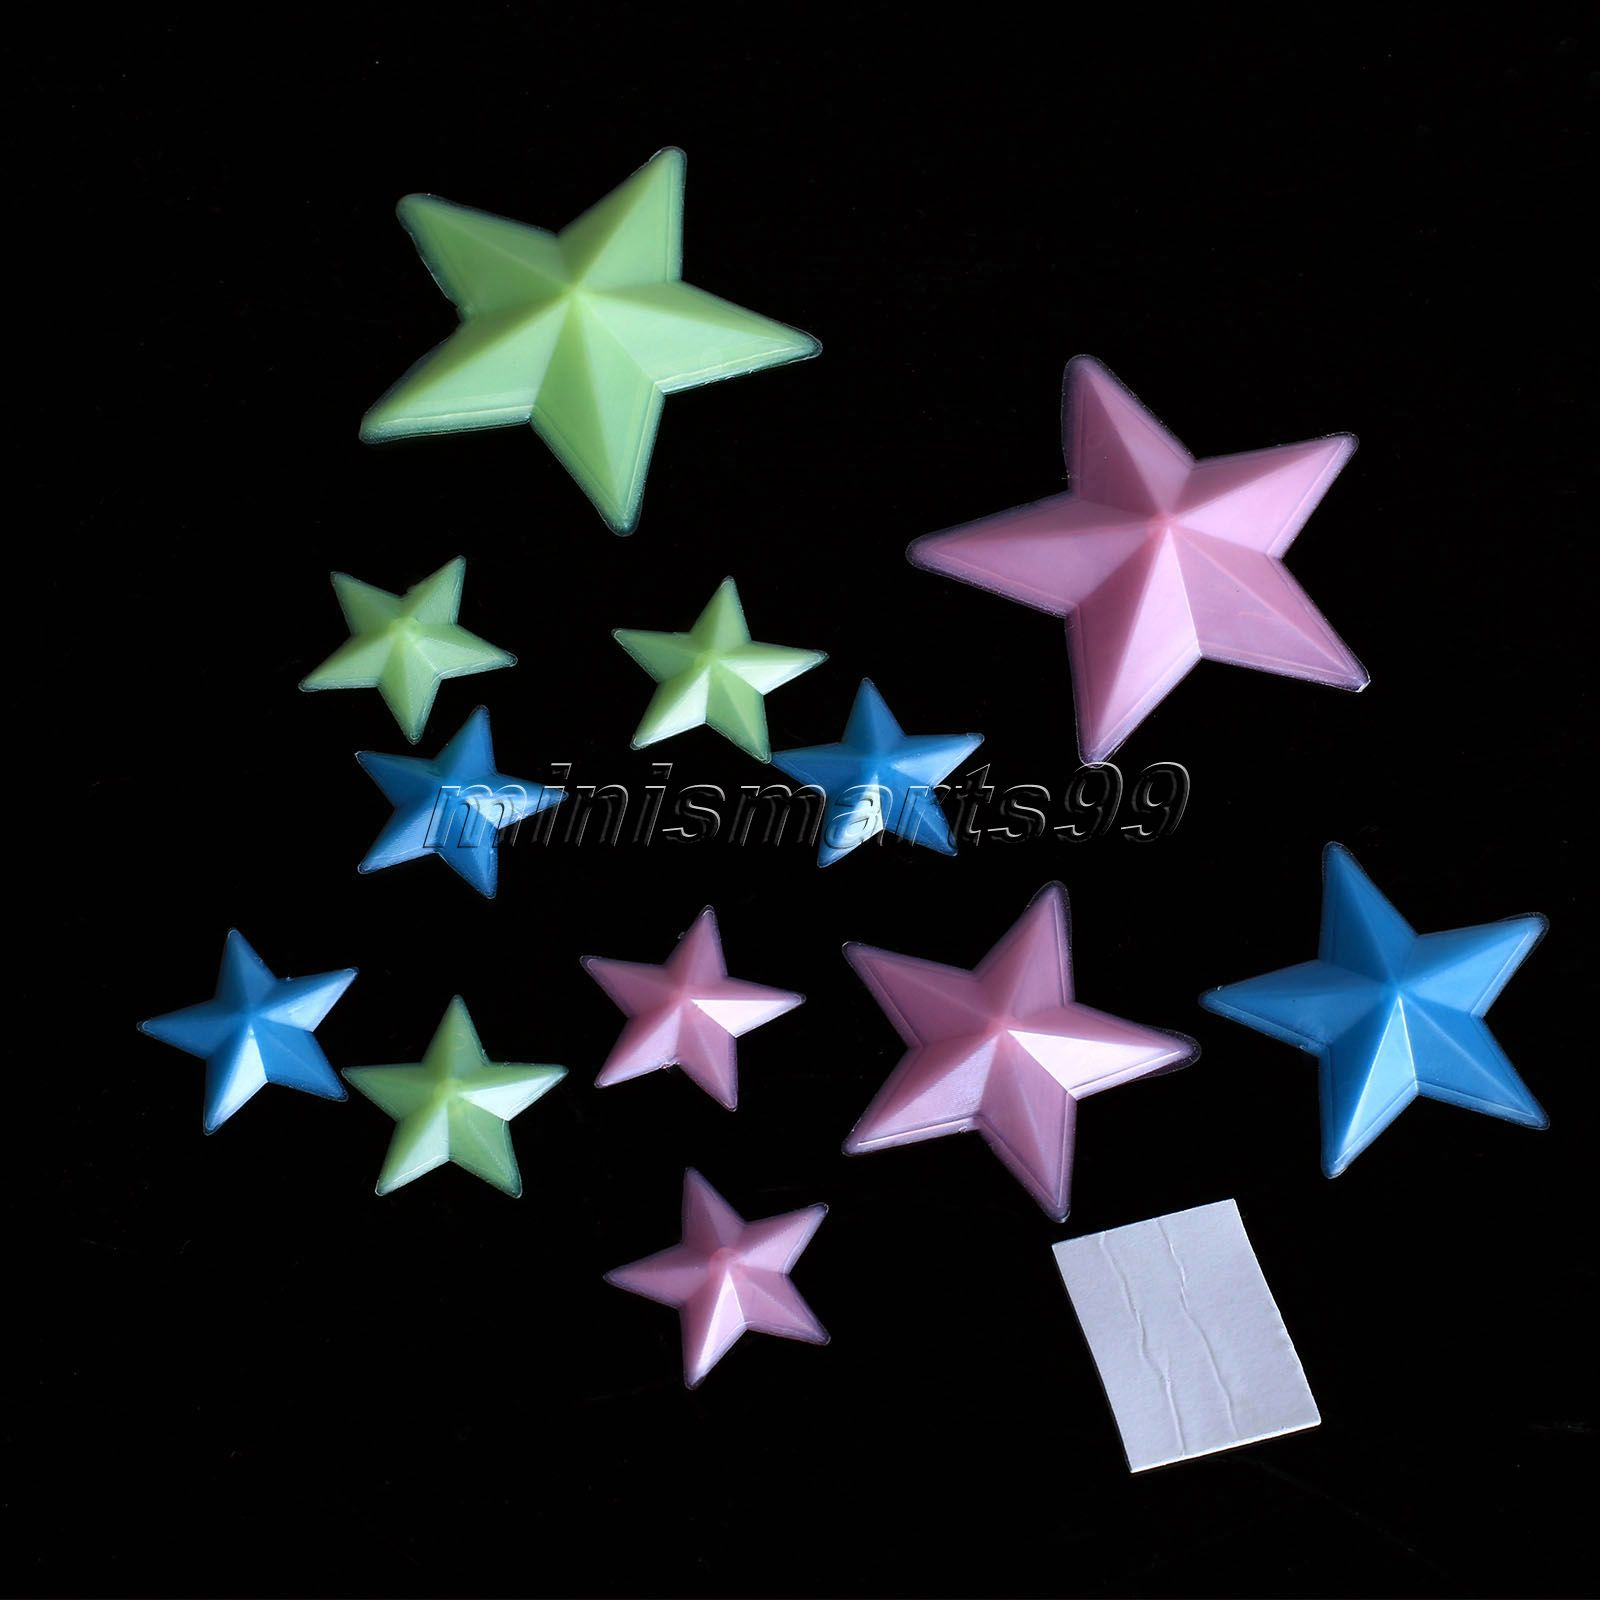 Plastic 3D Stars Wall Sticker Home Decor Glow In The Dark Luminous Fluorescent Wall Decals Baby Kids Bedroom Nursery Decals 12pc